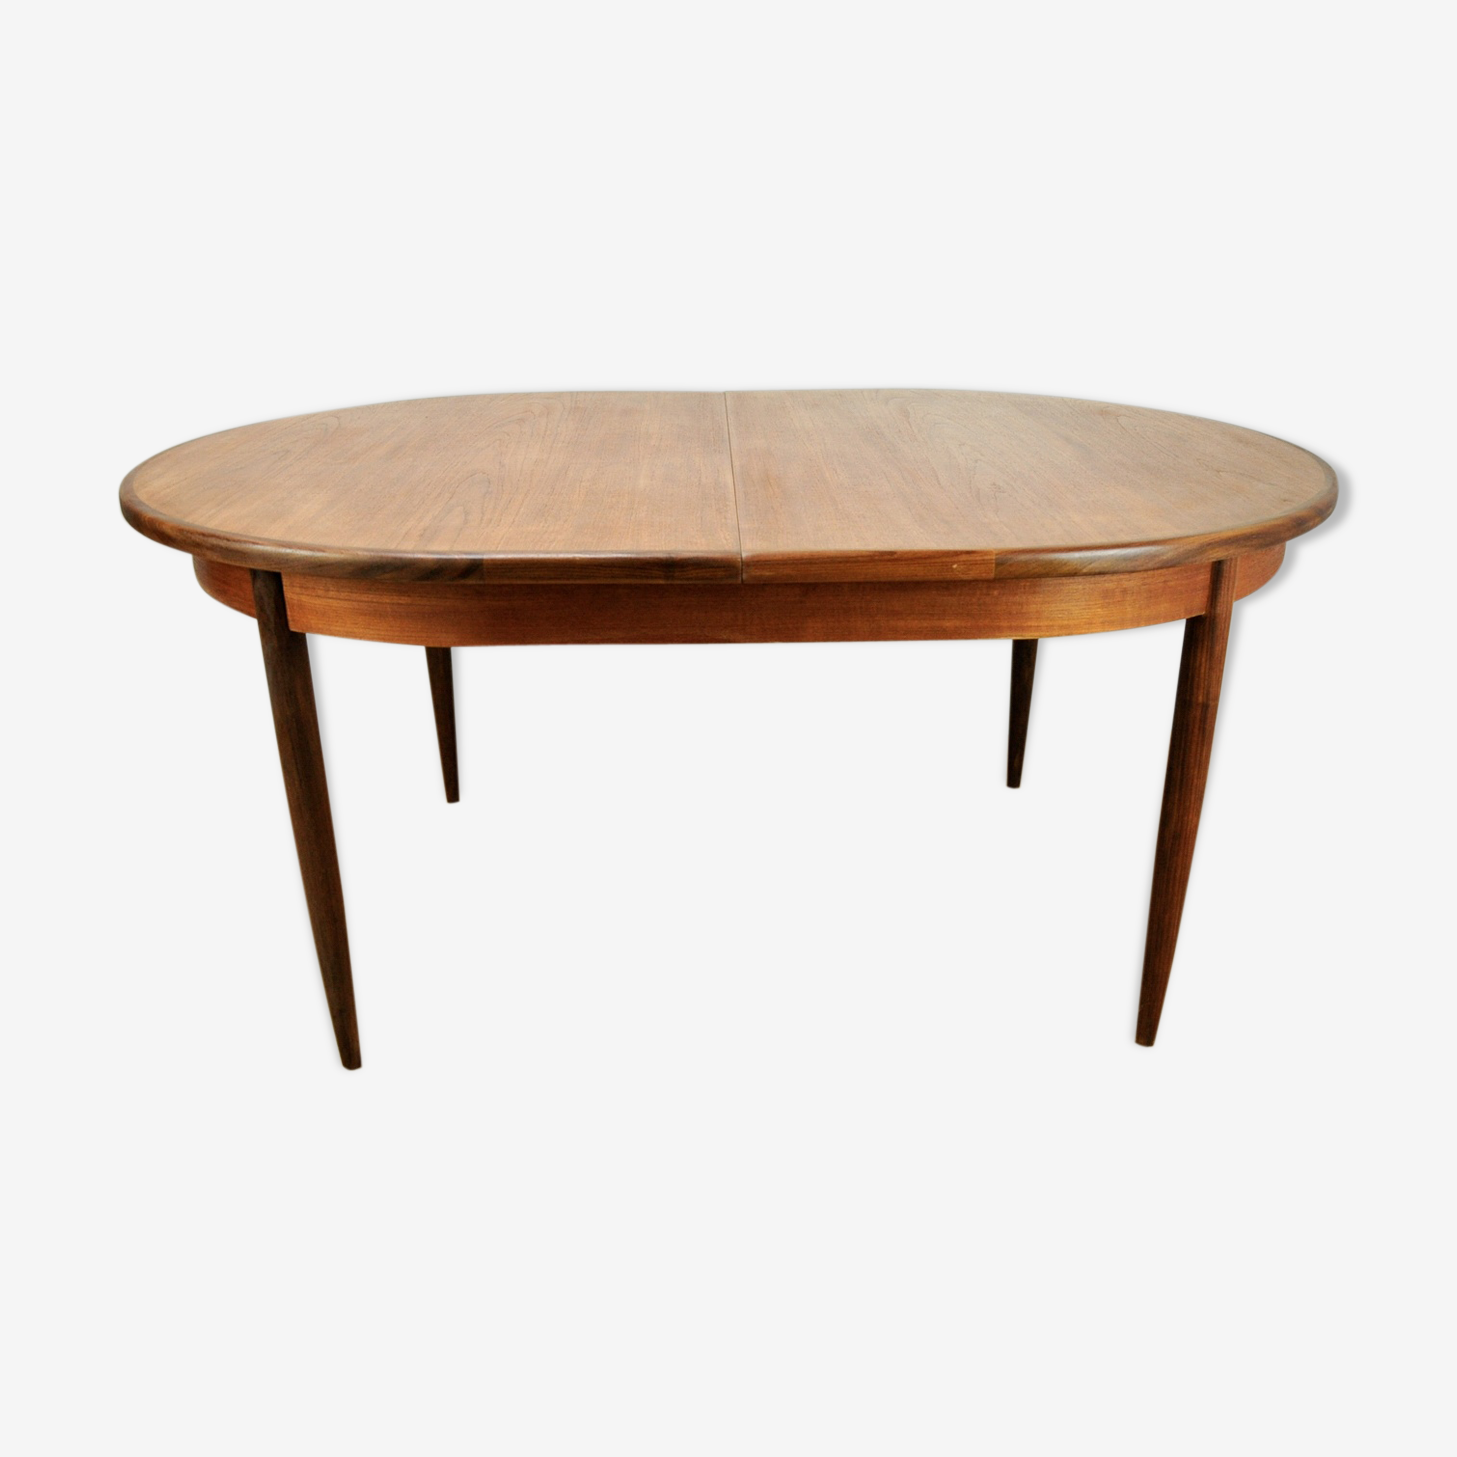 Extendable dining table in teak by G-Pplan